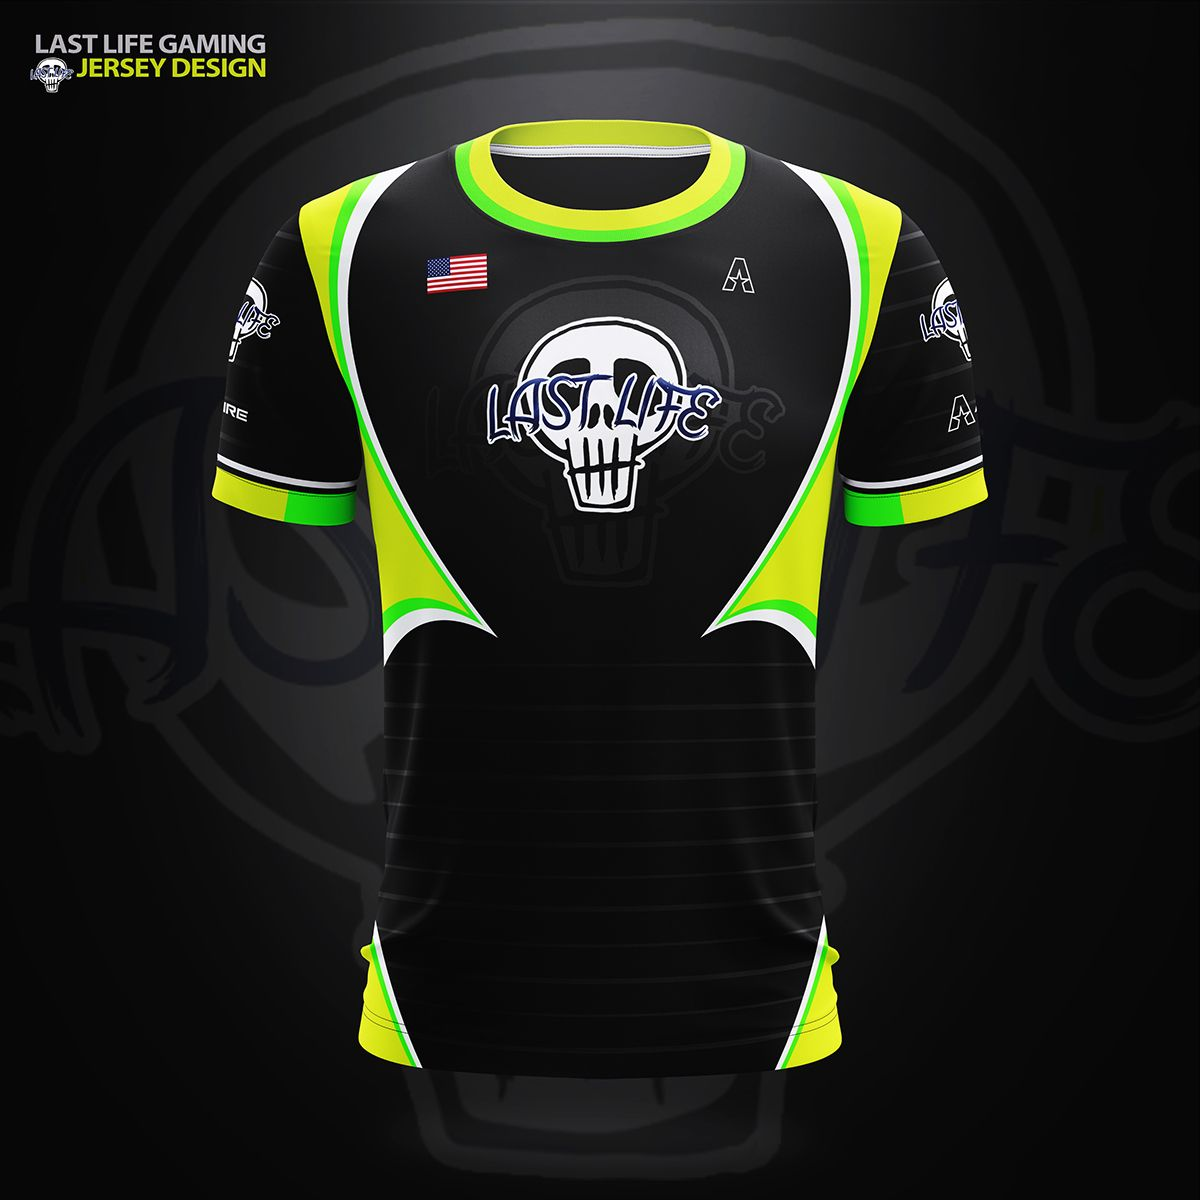 This file has 2 different views with a resolution of 2200*2000 px which only works with photoshop version ps c4 or higher. 837 Free Download Mockup Jersey Esport Cdr Photoshop File